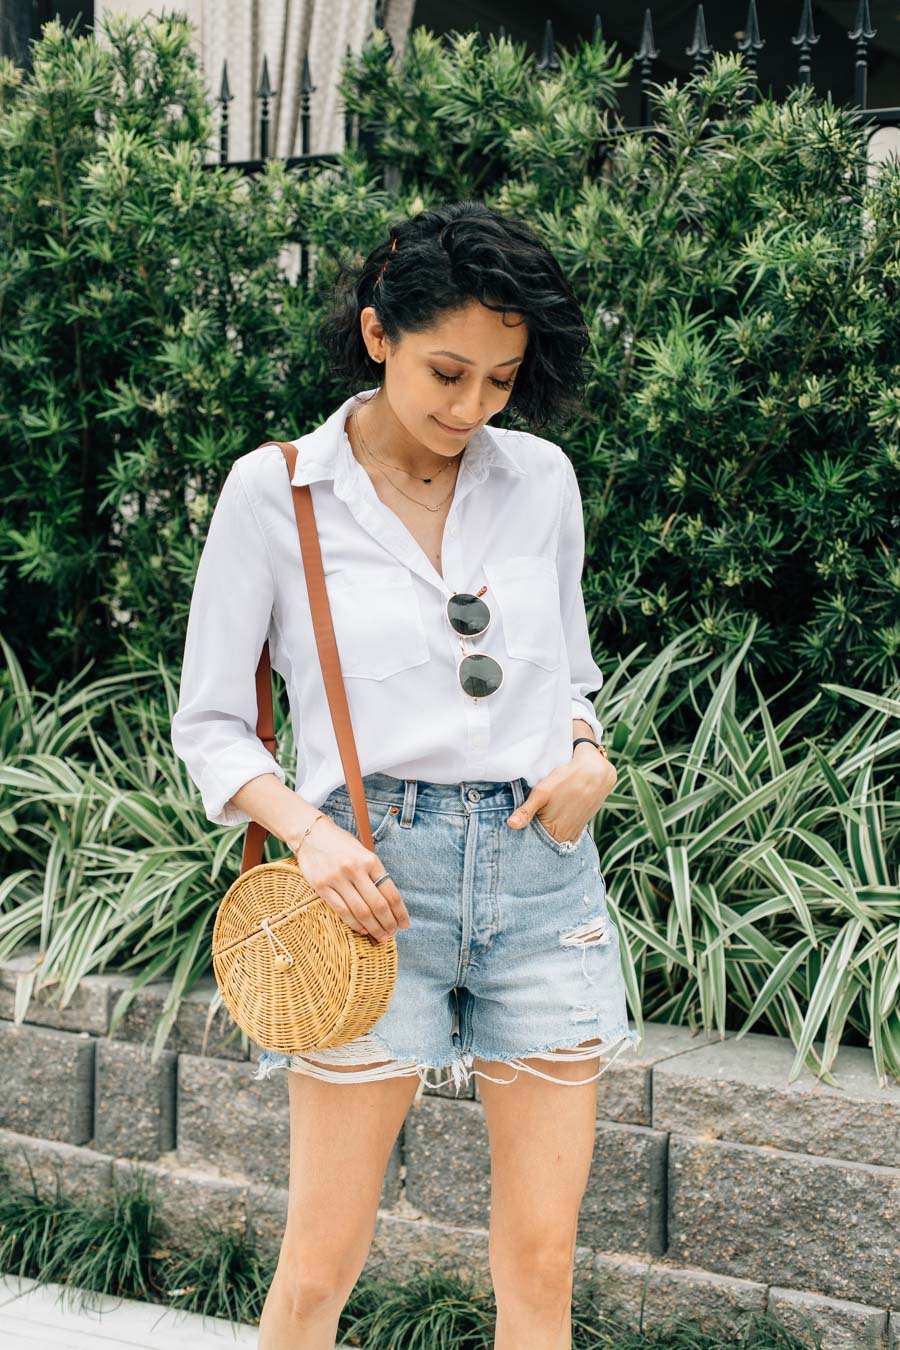 Fashion blogger Lilly Beltran styles Abercrombie denim shorts with J.Crew sandals and round wicker bag.